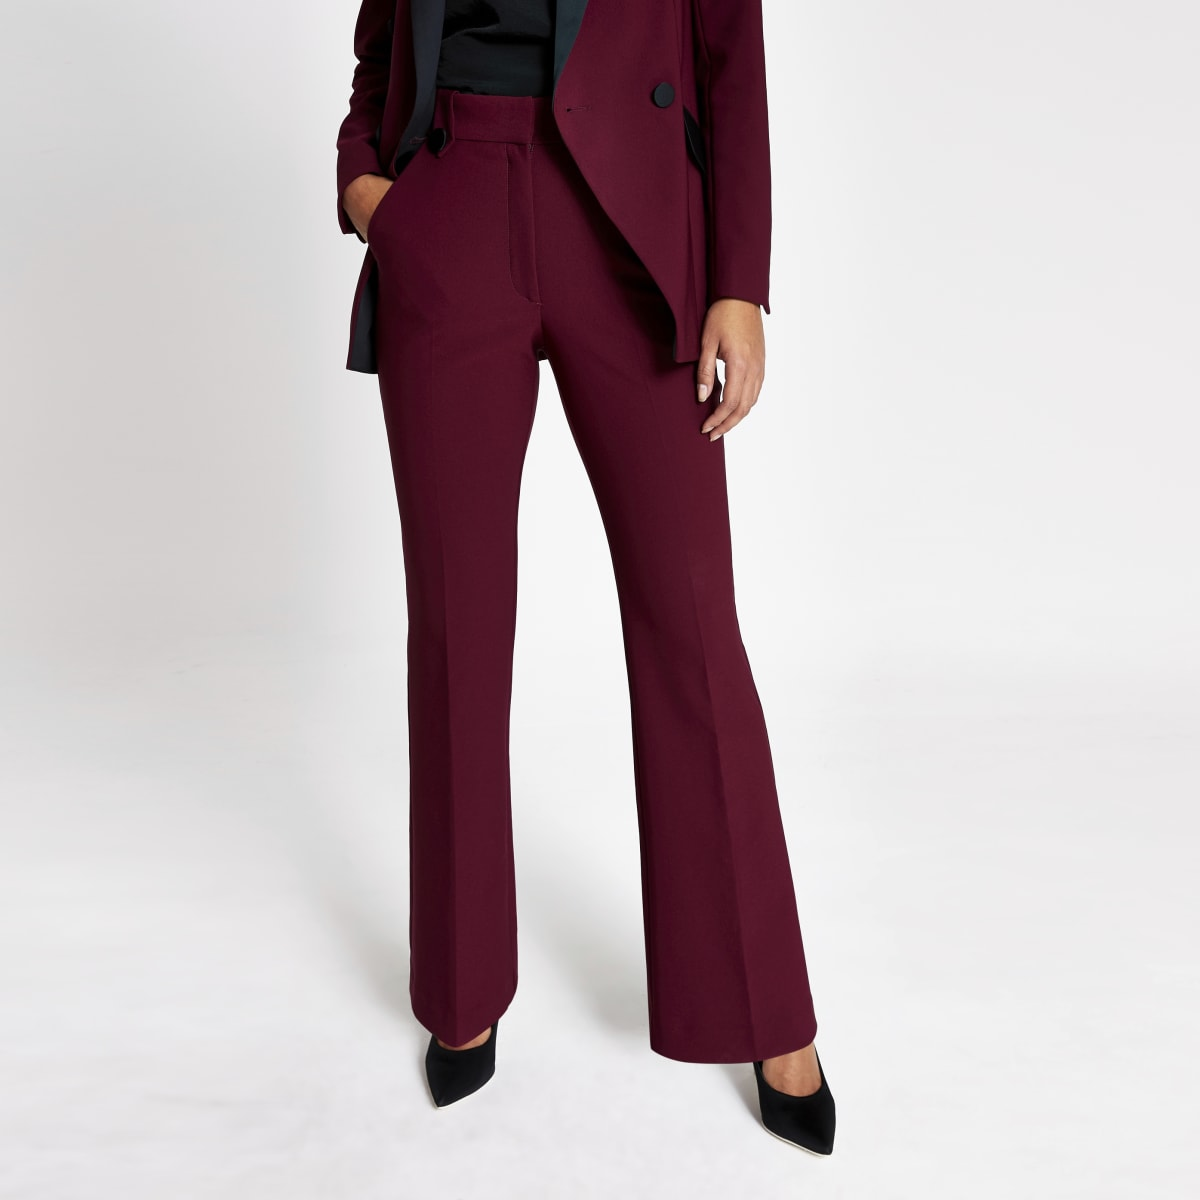 Red flare suit trousers